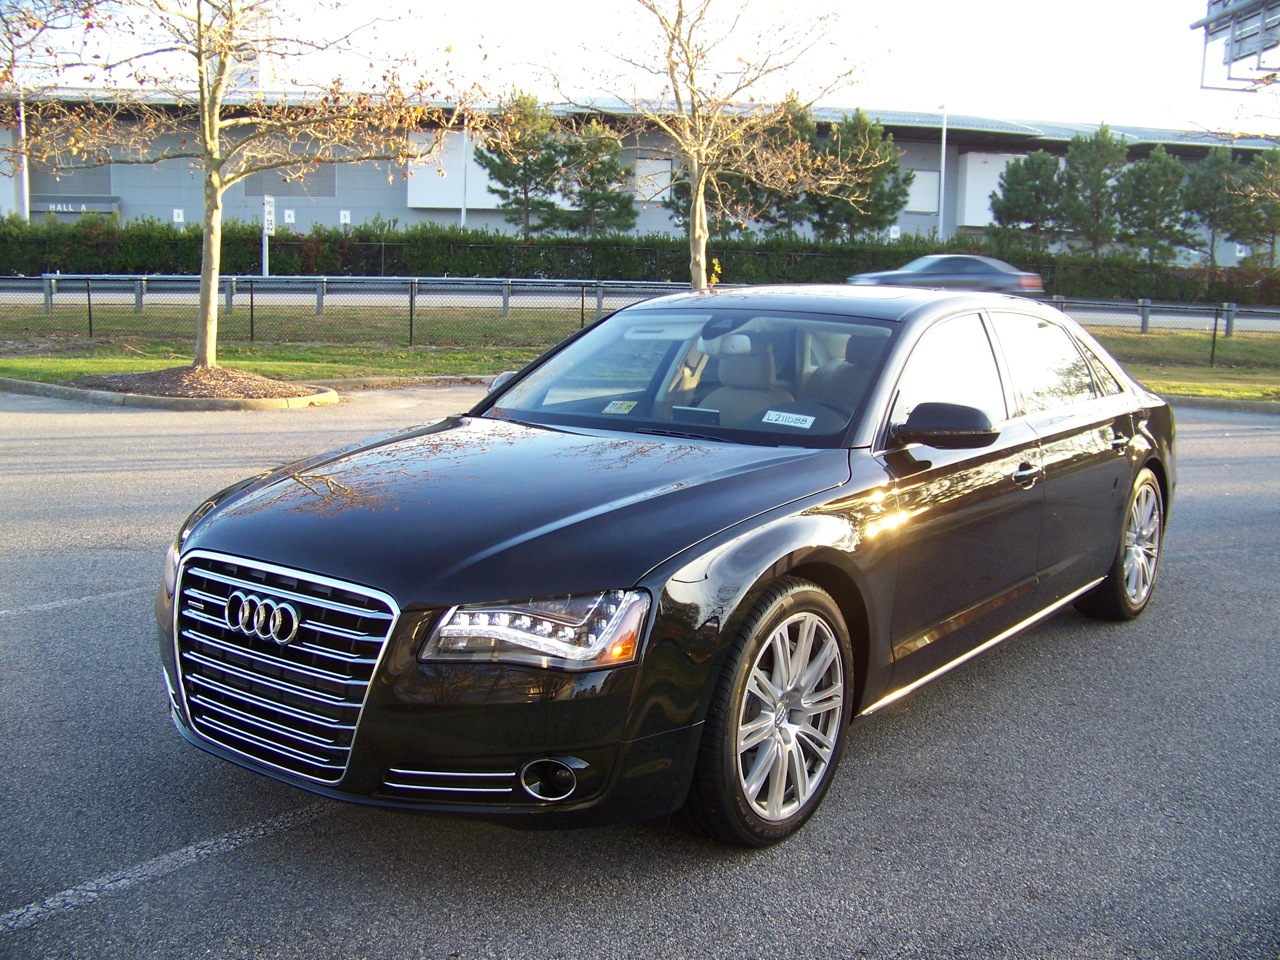 Review Audi A L FSI The Truth About Cars - Checkered flag audi